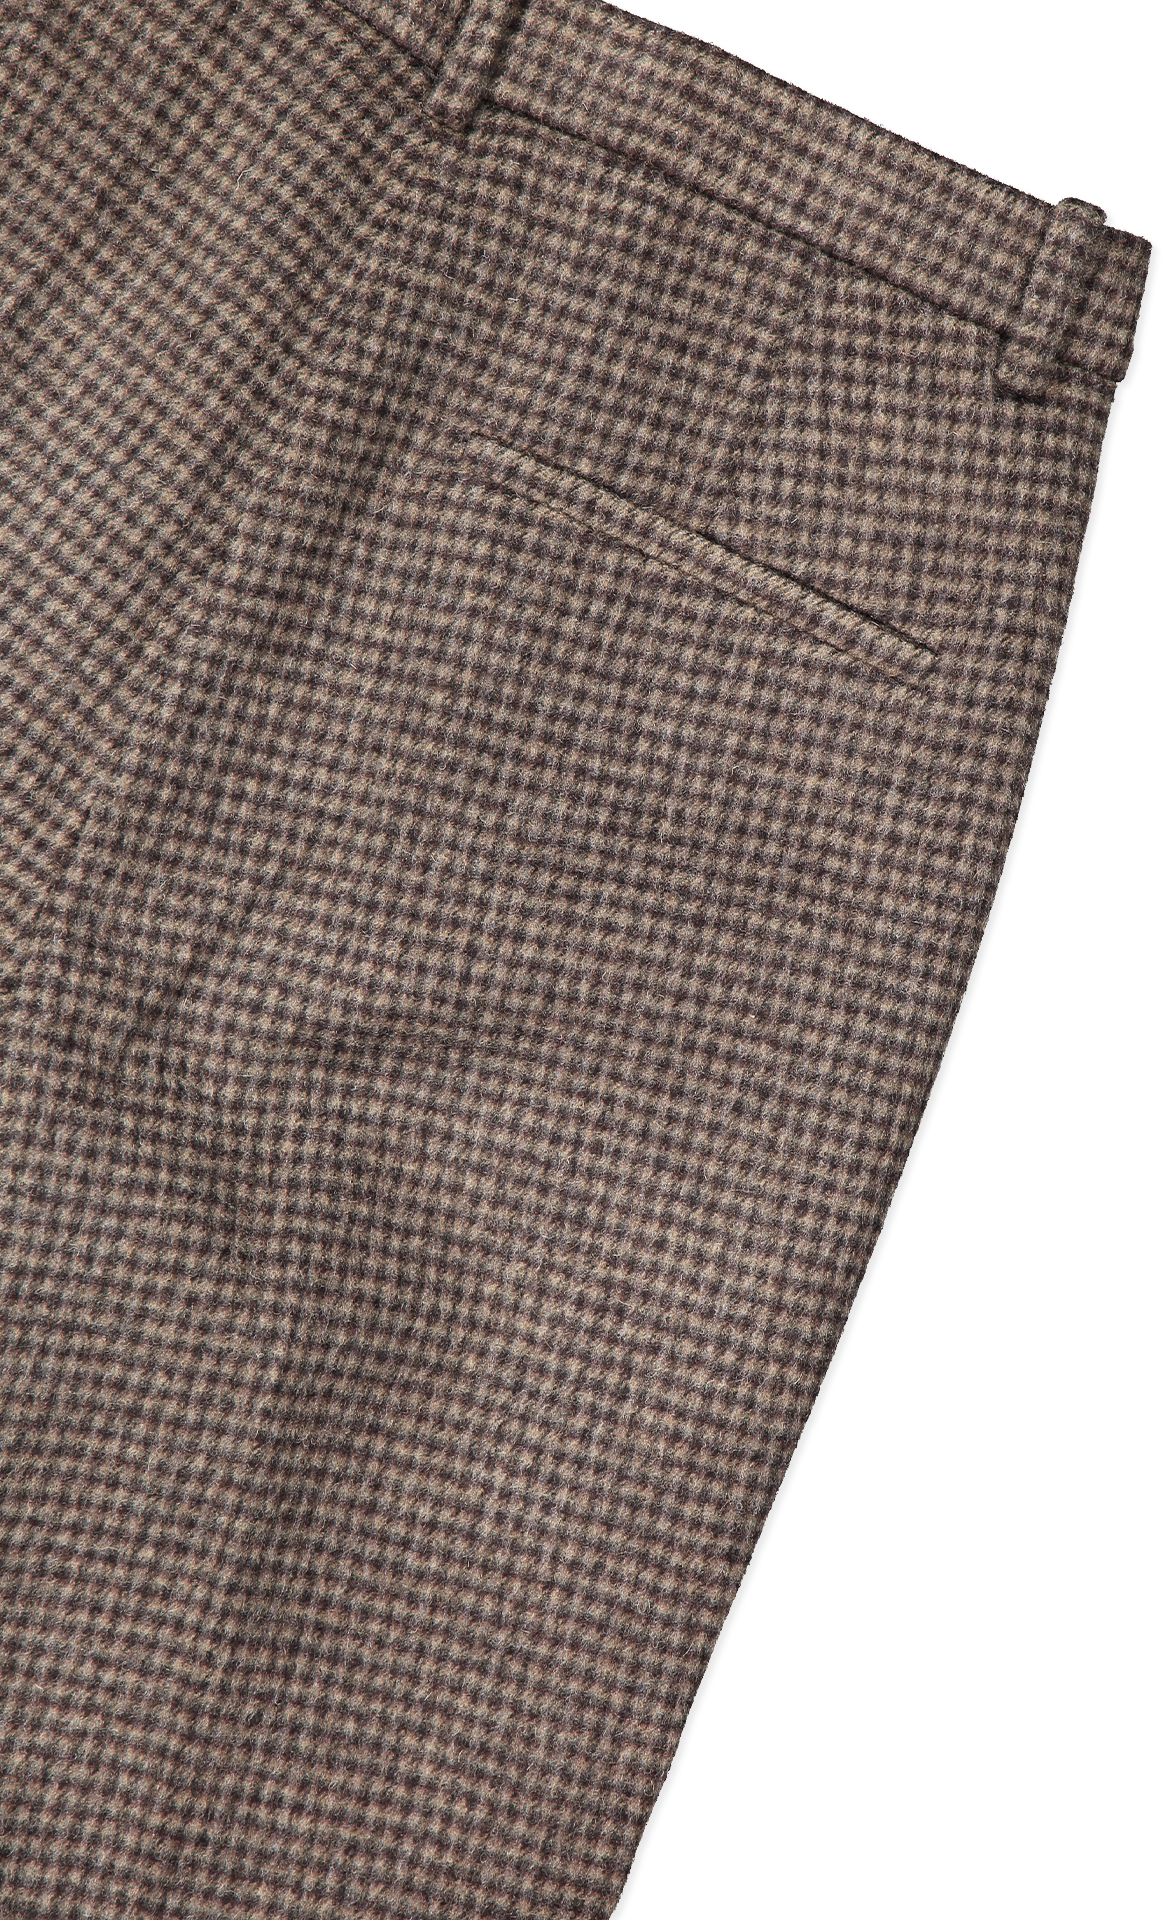 Back pocket detail image of Theory Women's Tailored Trouser Brown Multi